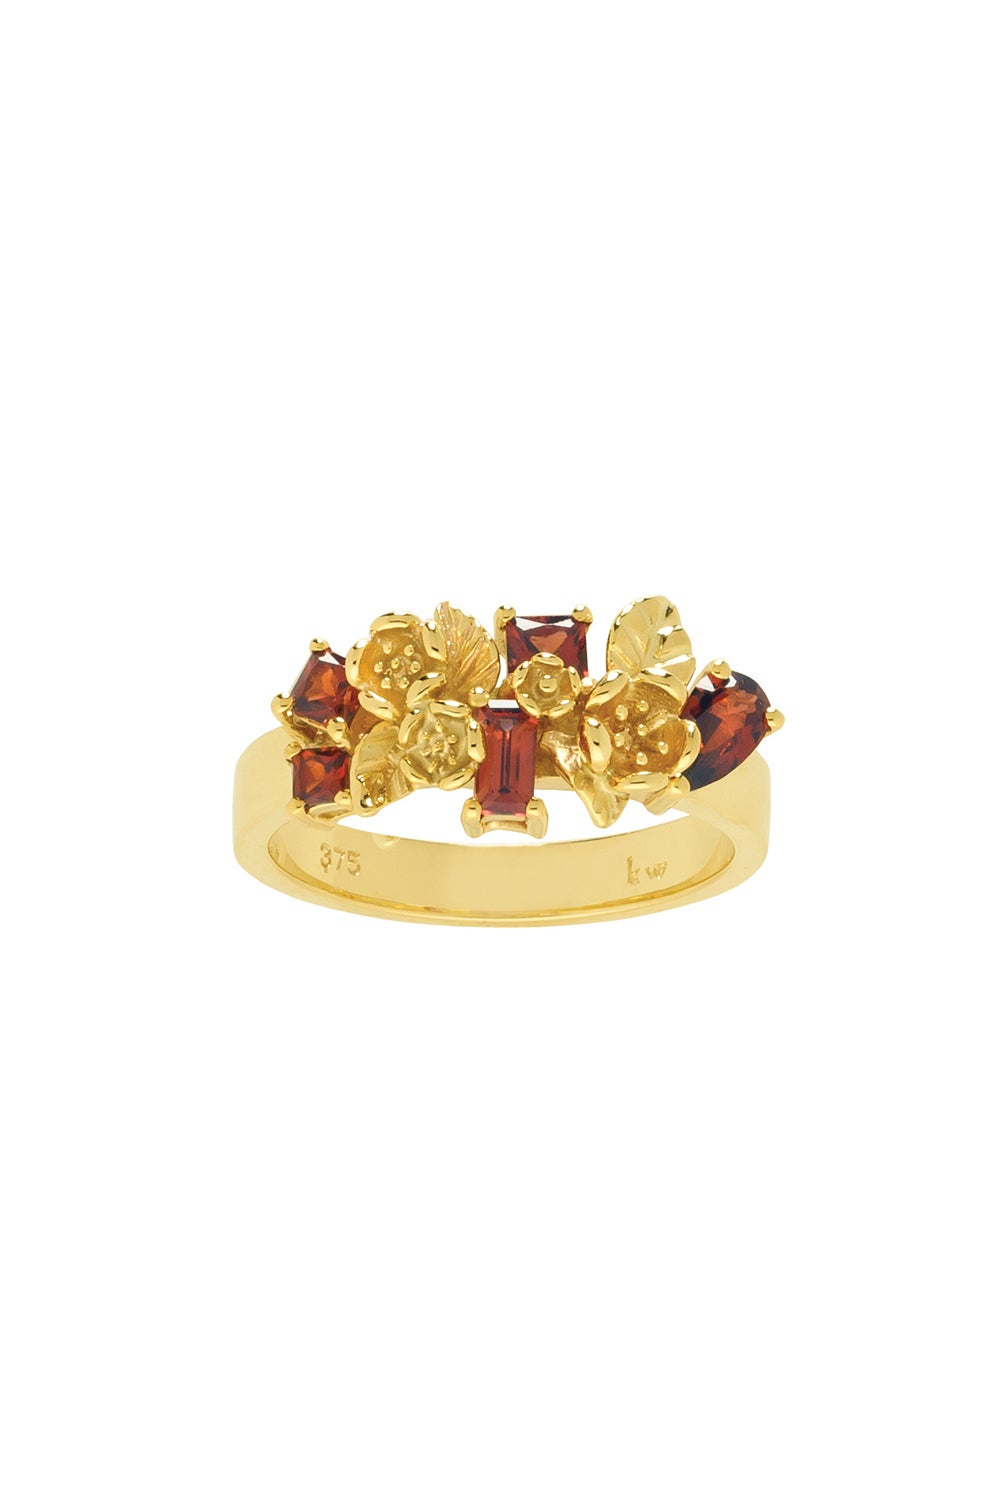 Rock Garden Flowers Ring Gold & Garnet